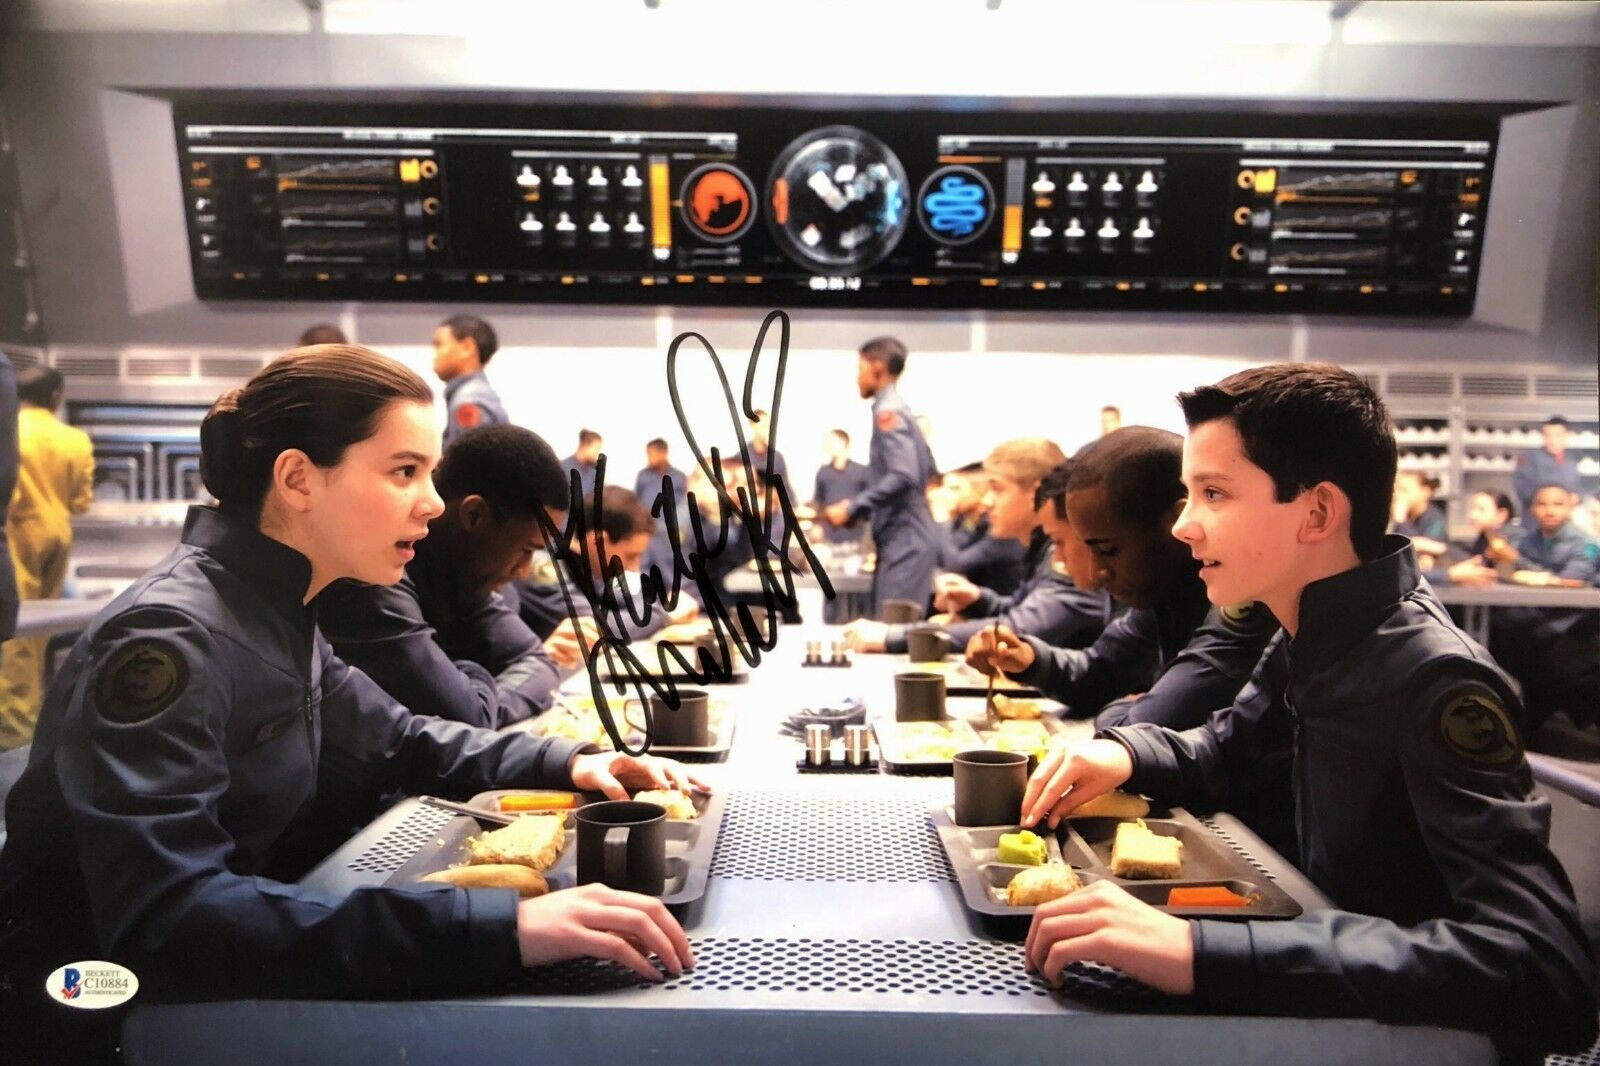 Hailee Steinfeld Signed 'Ender's game' 12x18 Photo Beckett BAS C10884